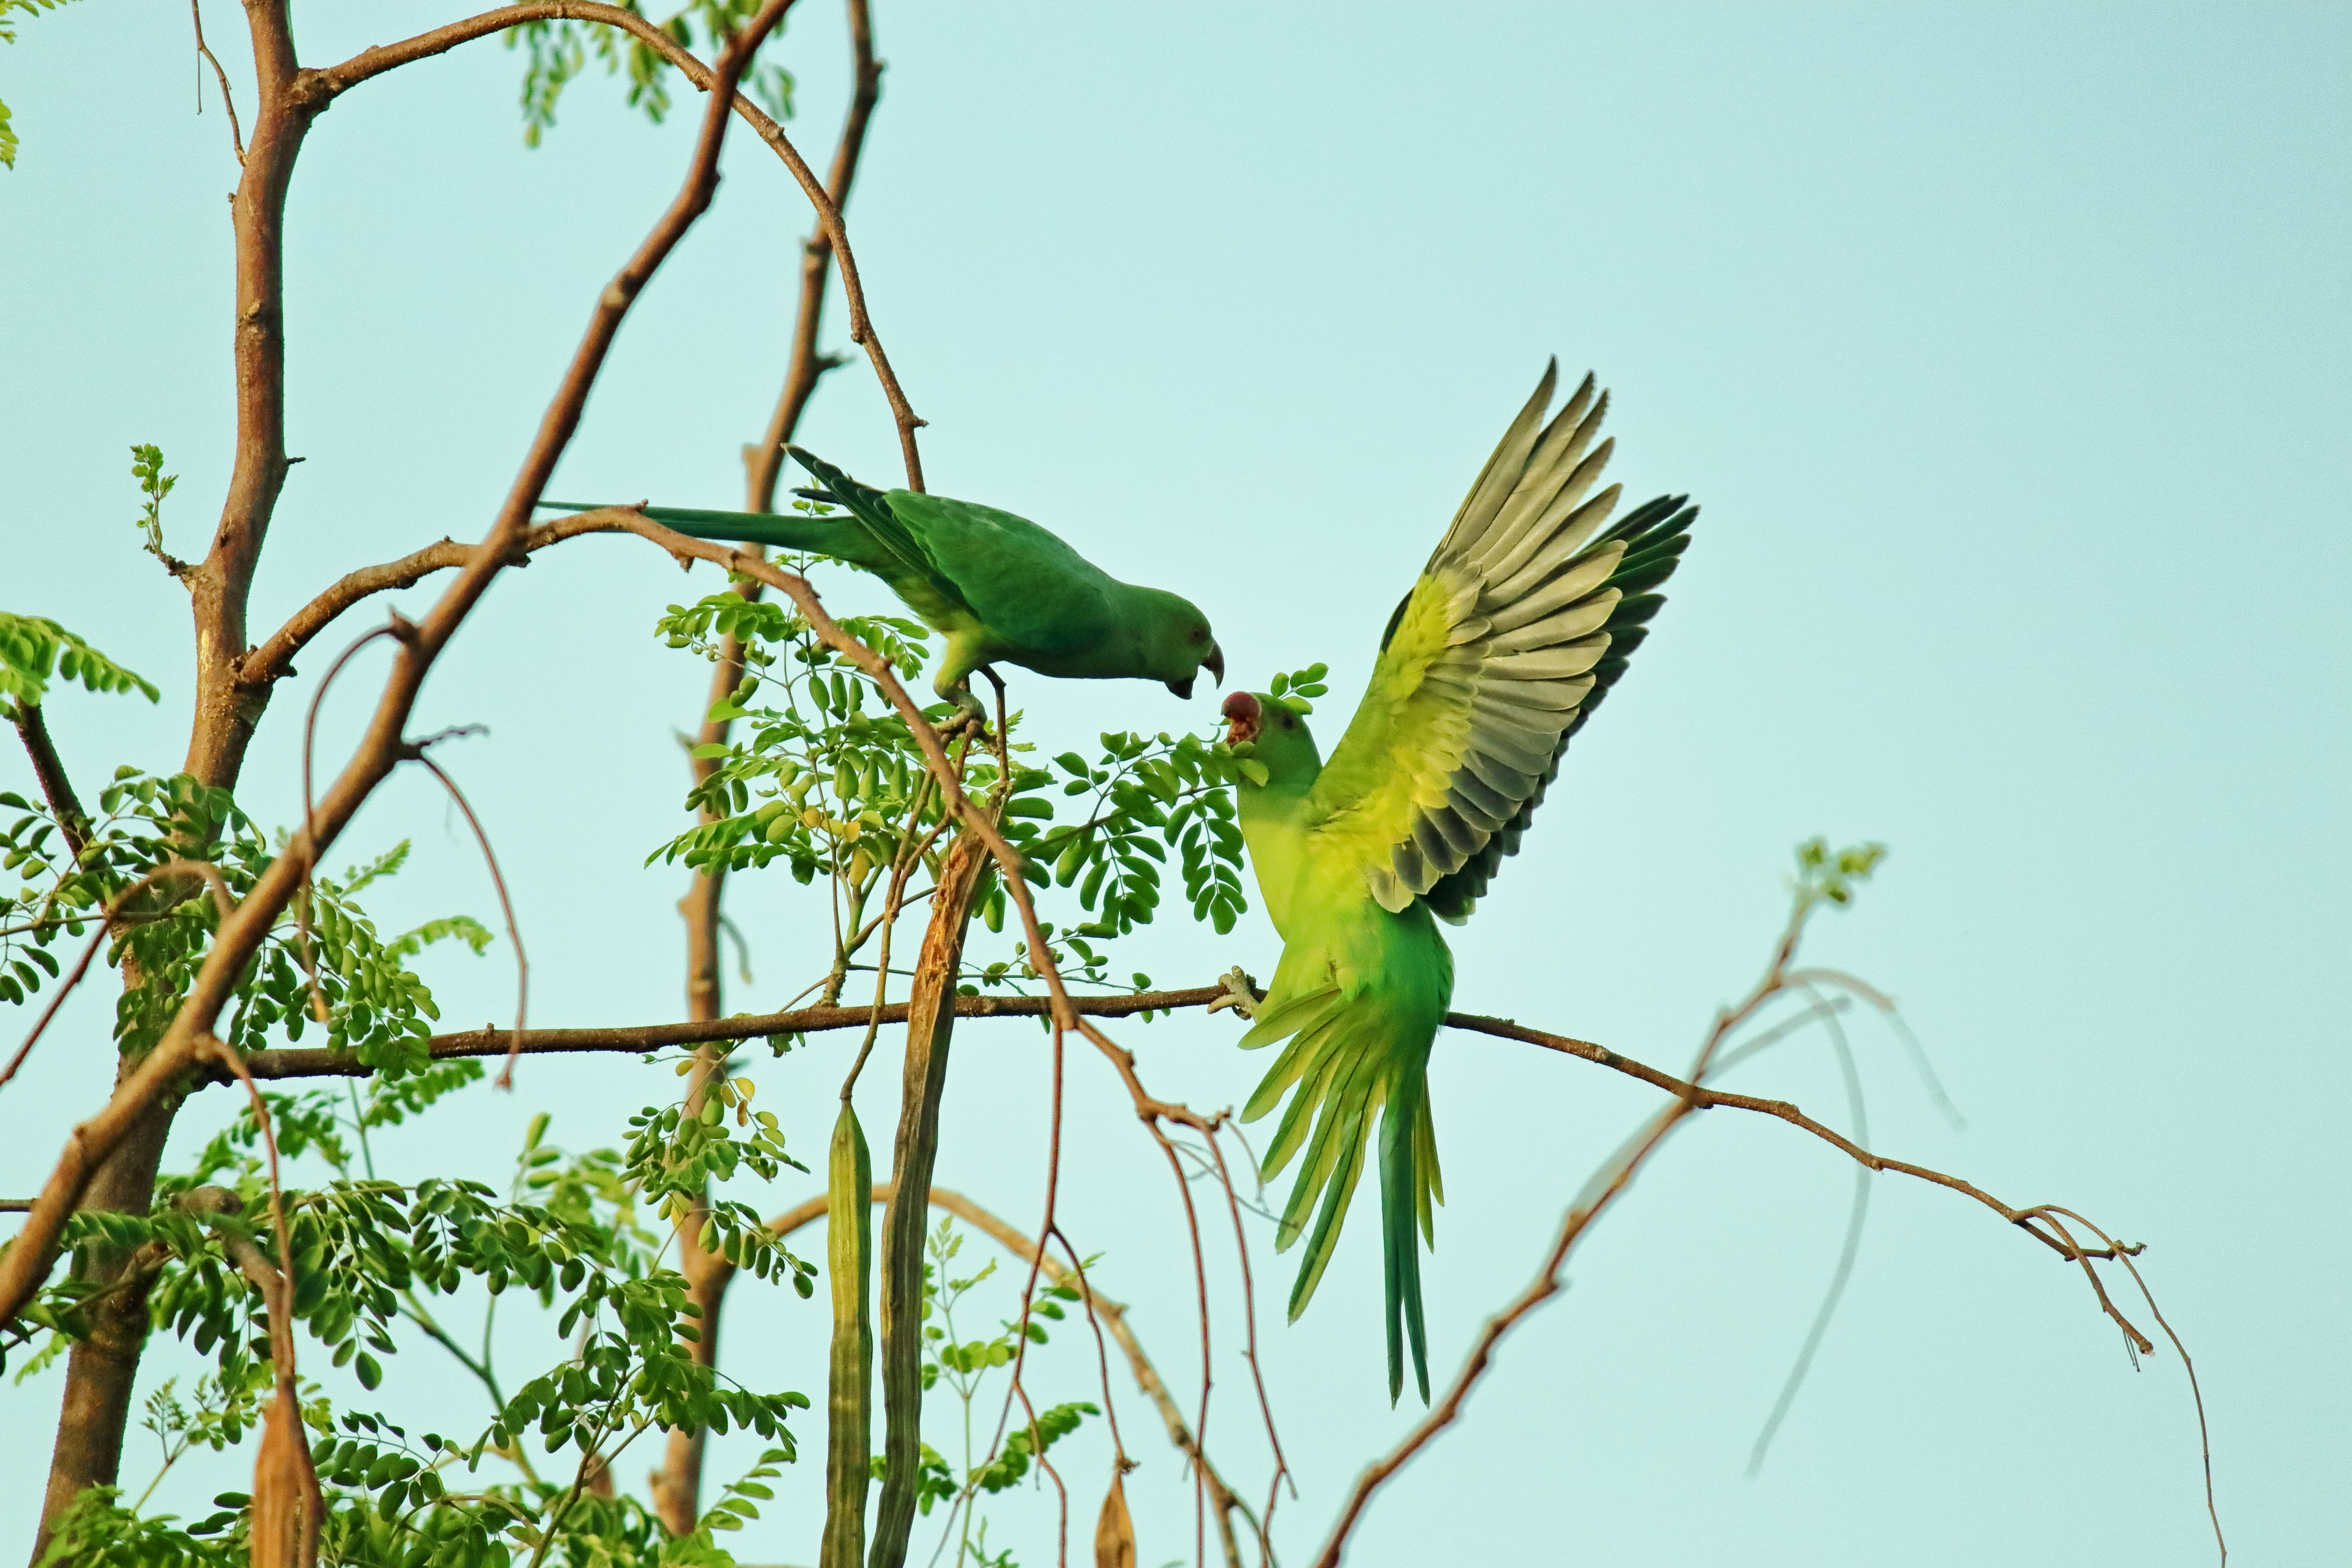 Two Green Parrots